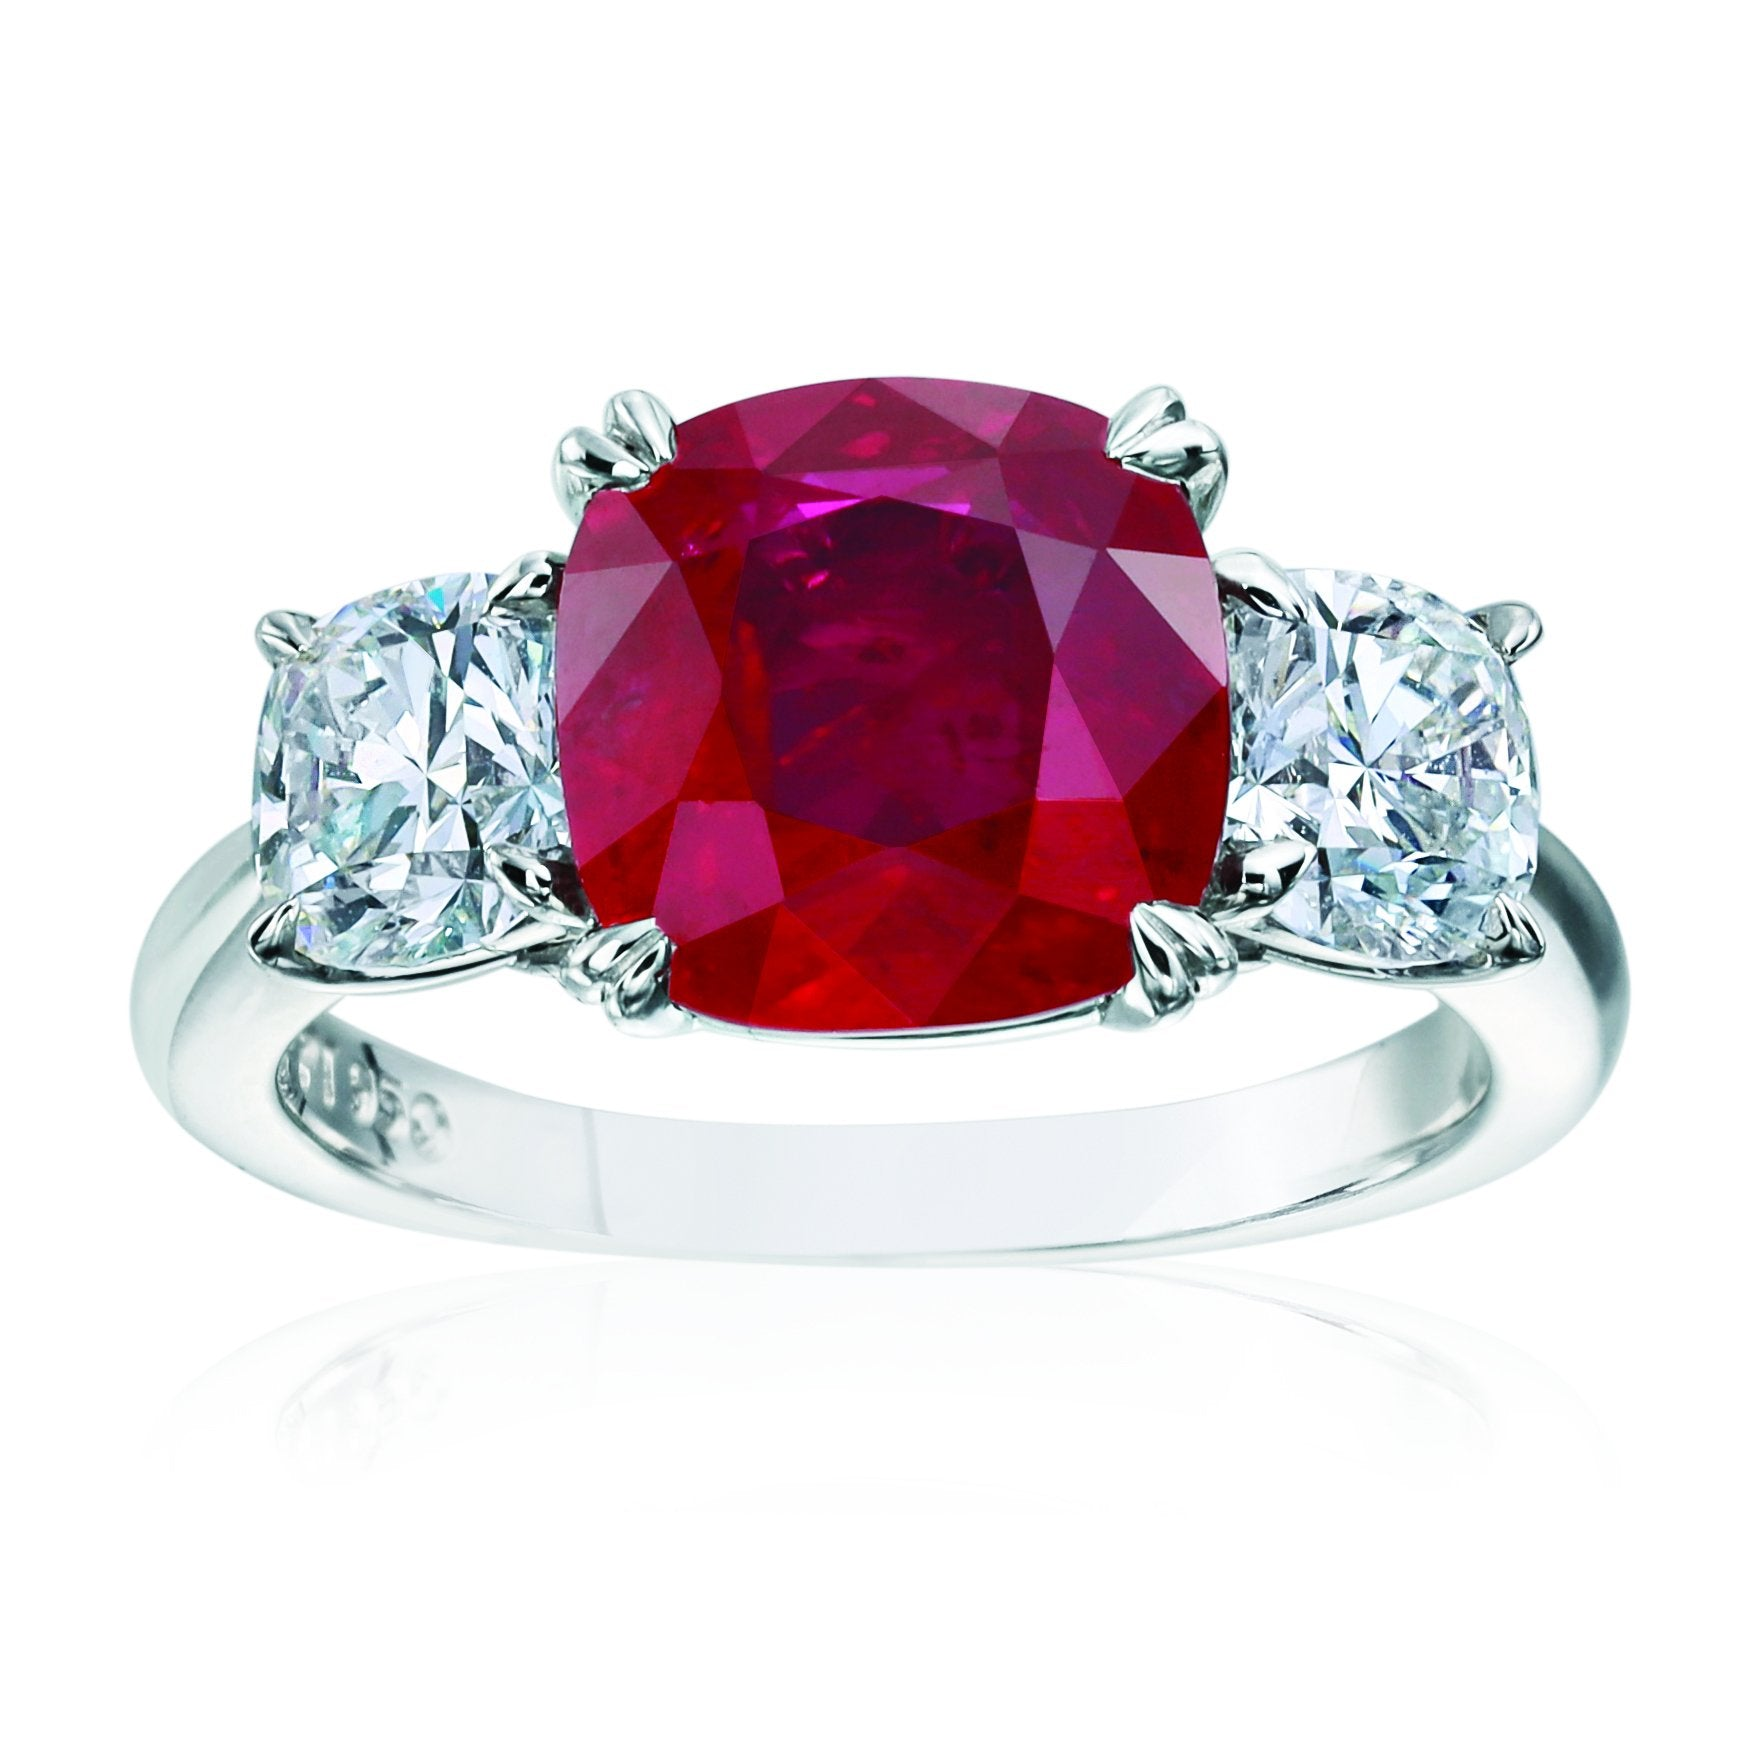 Platinum Cushion Cut Ruby Ring with Diamonds